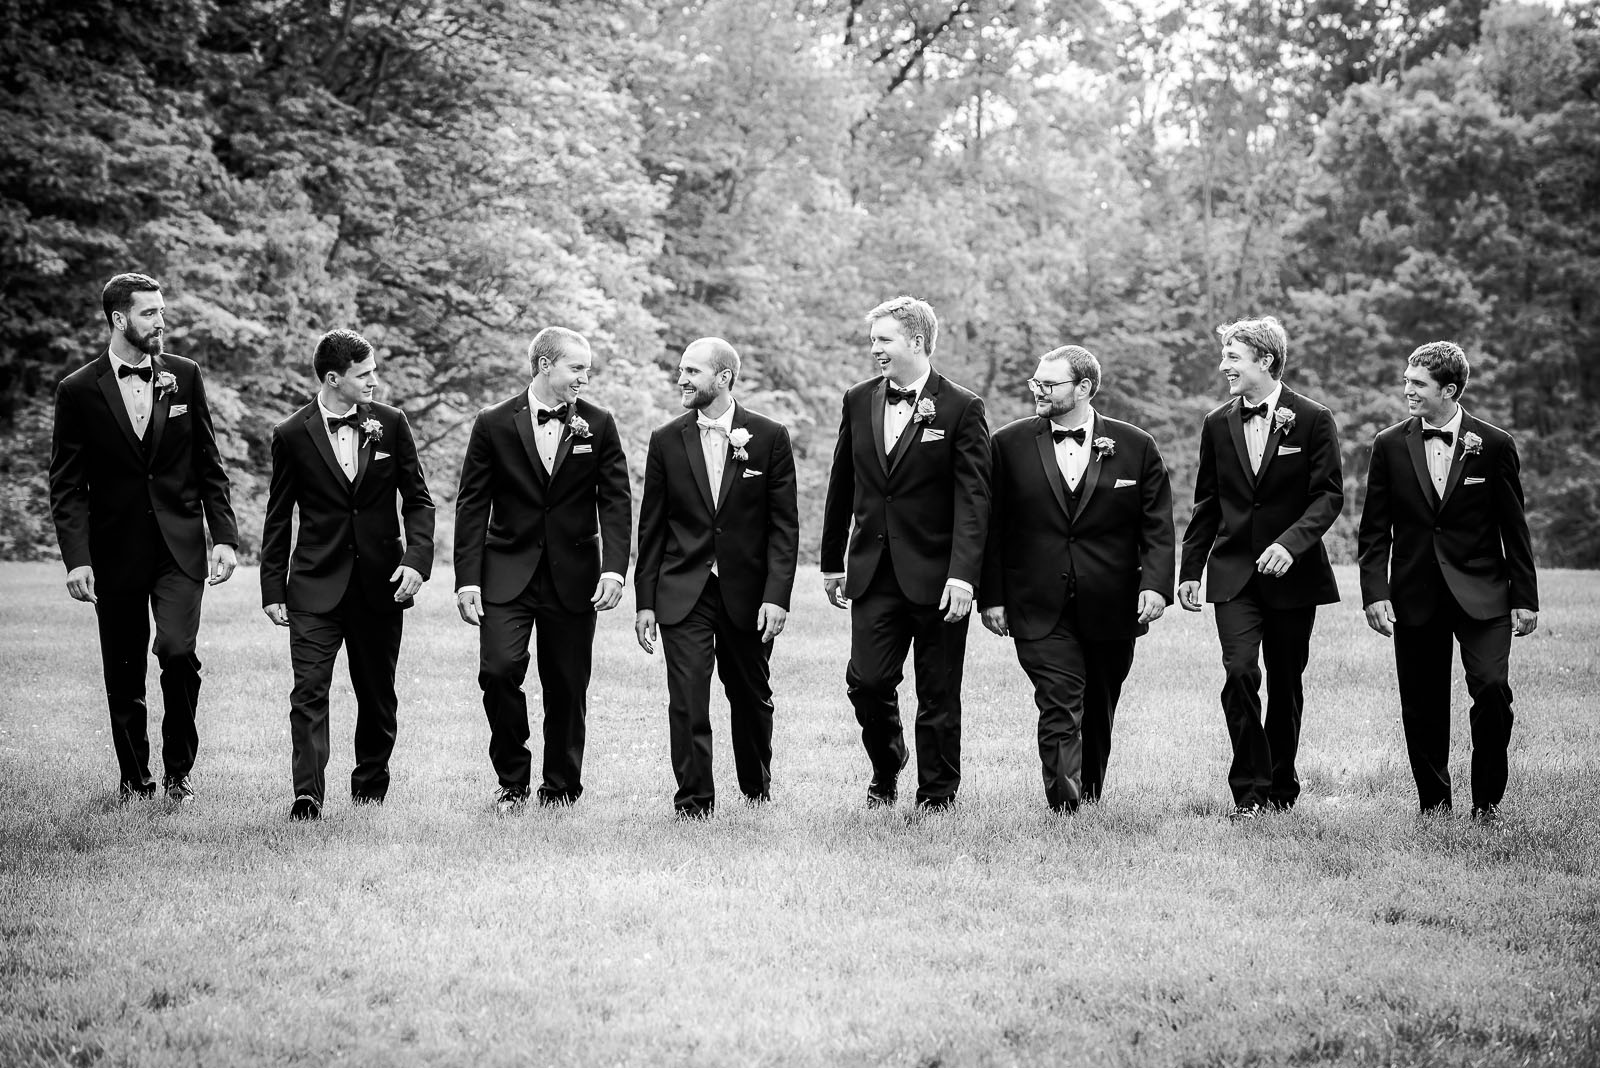 eric_and_christy_photographers_blog_wedding_katieandy-47